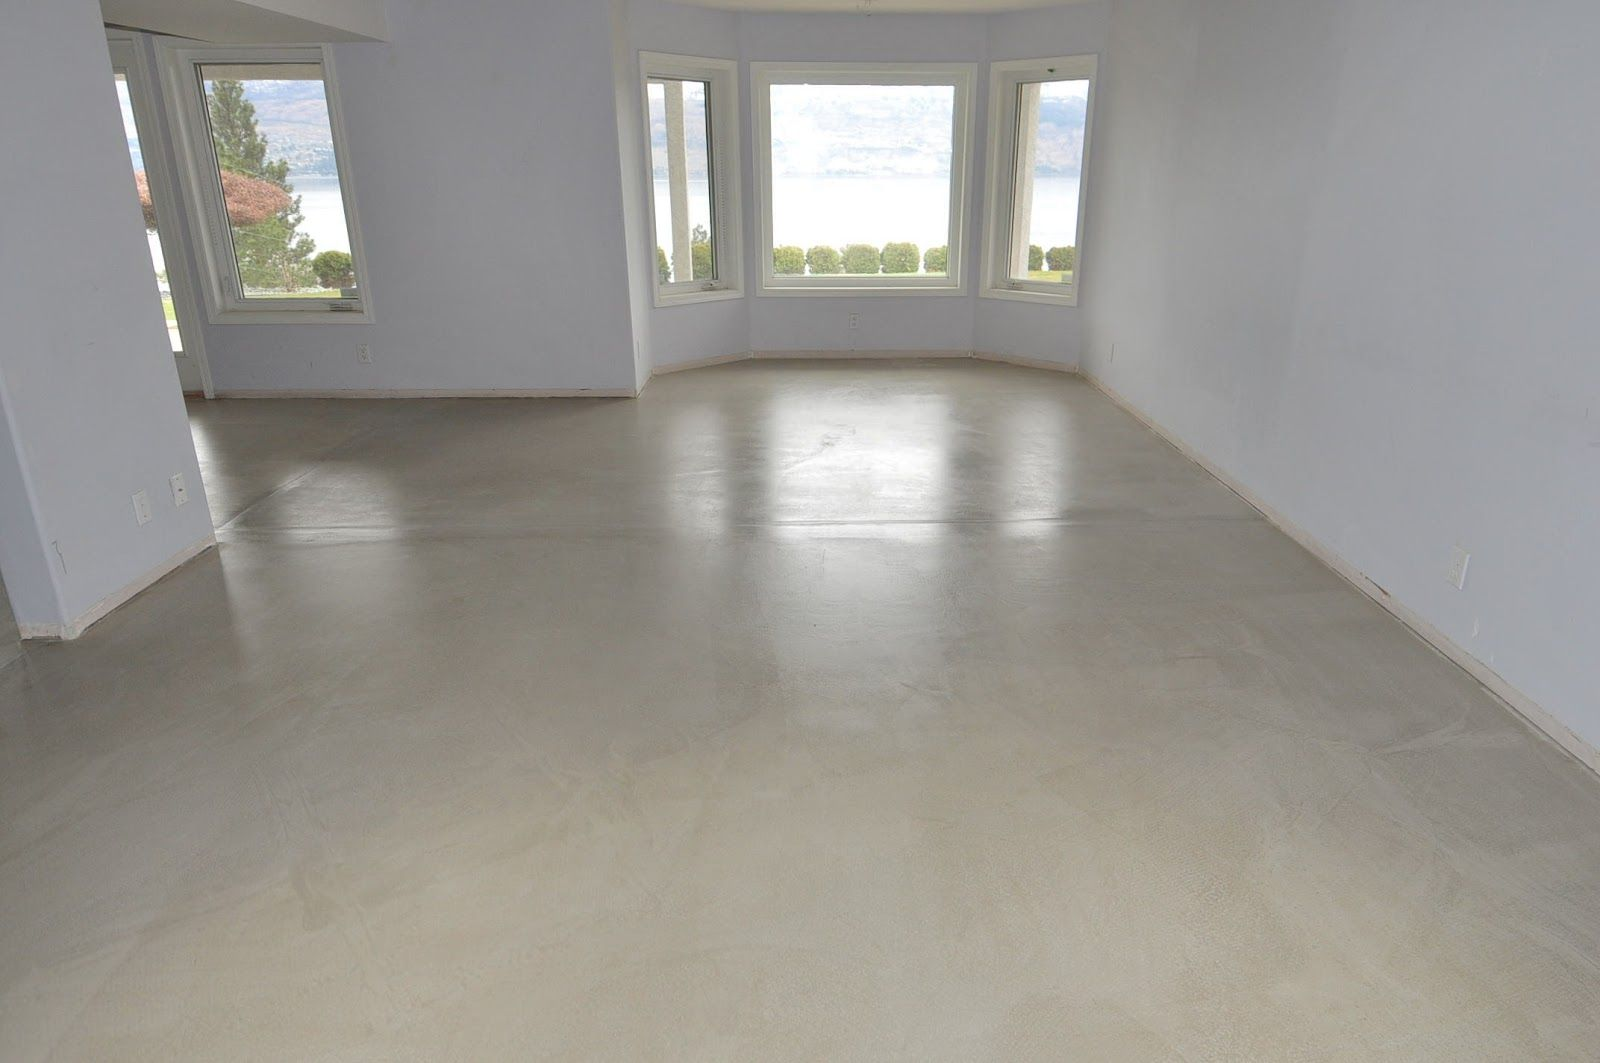 Ideas Cream Modern Concrete Floor Paint That Can Be Combined With White  Wall Can Add The Modern Touch Inside Modern House Design Ideas With  Minimalist ...